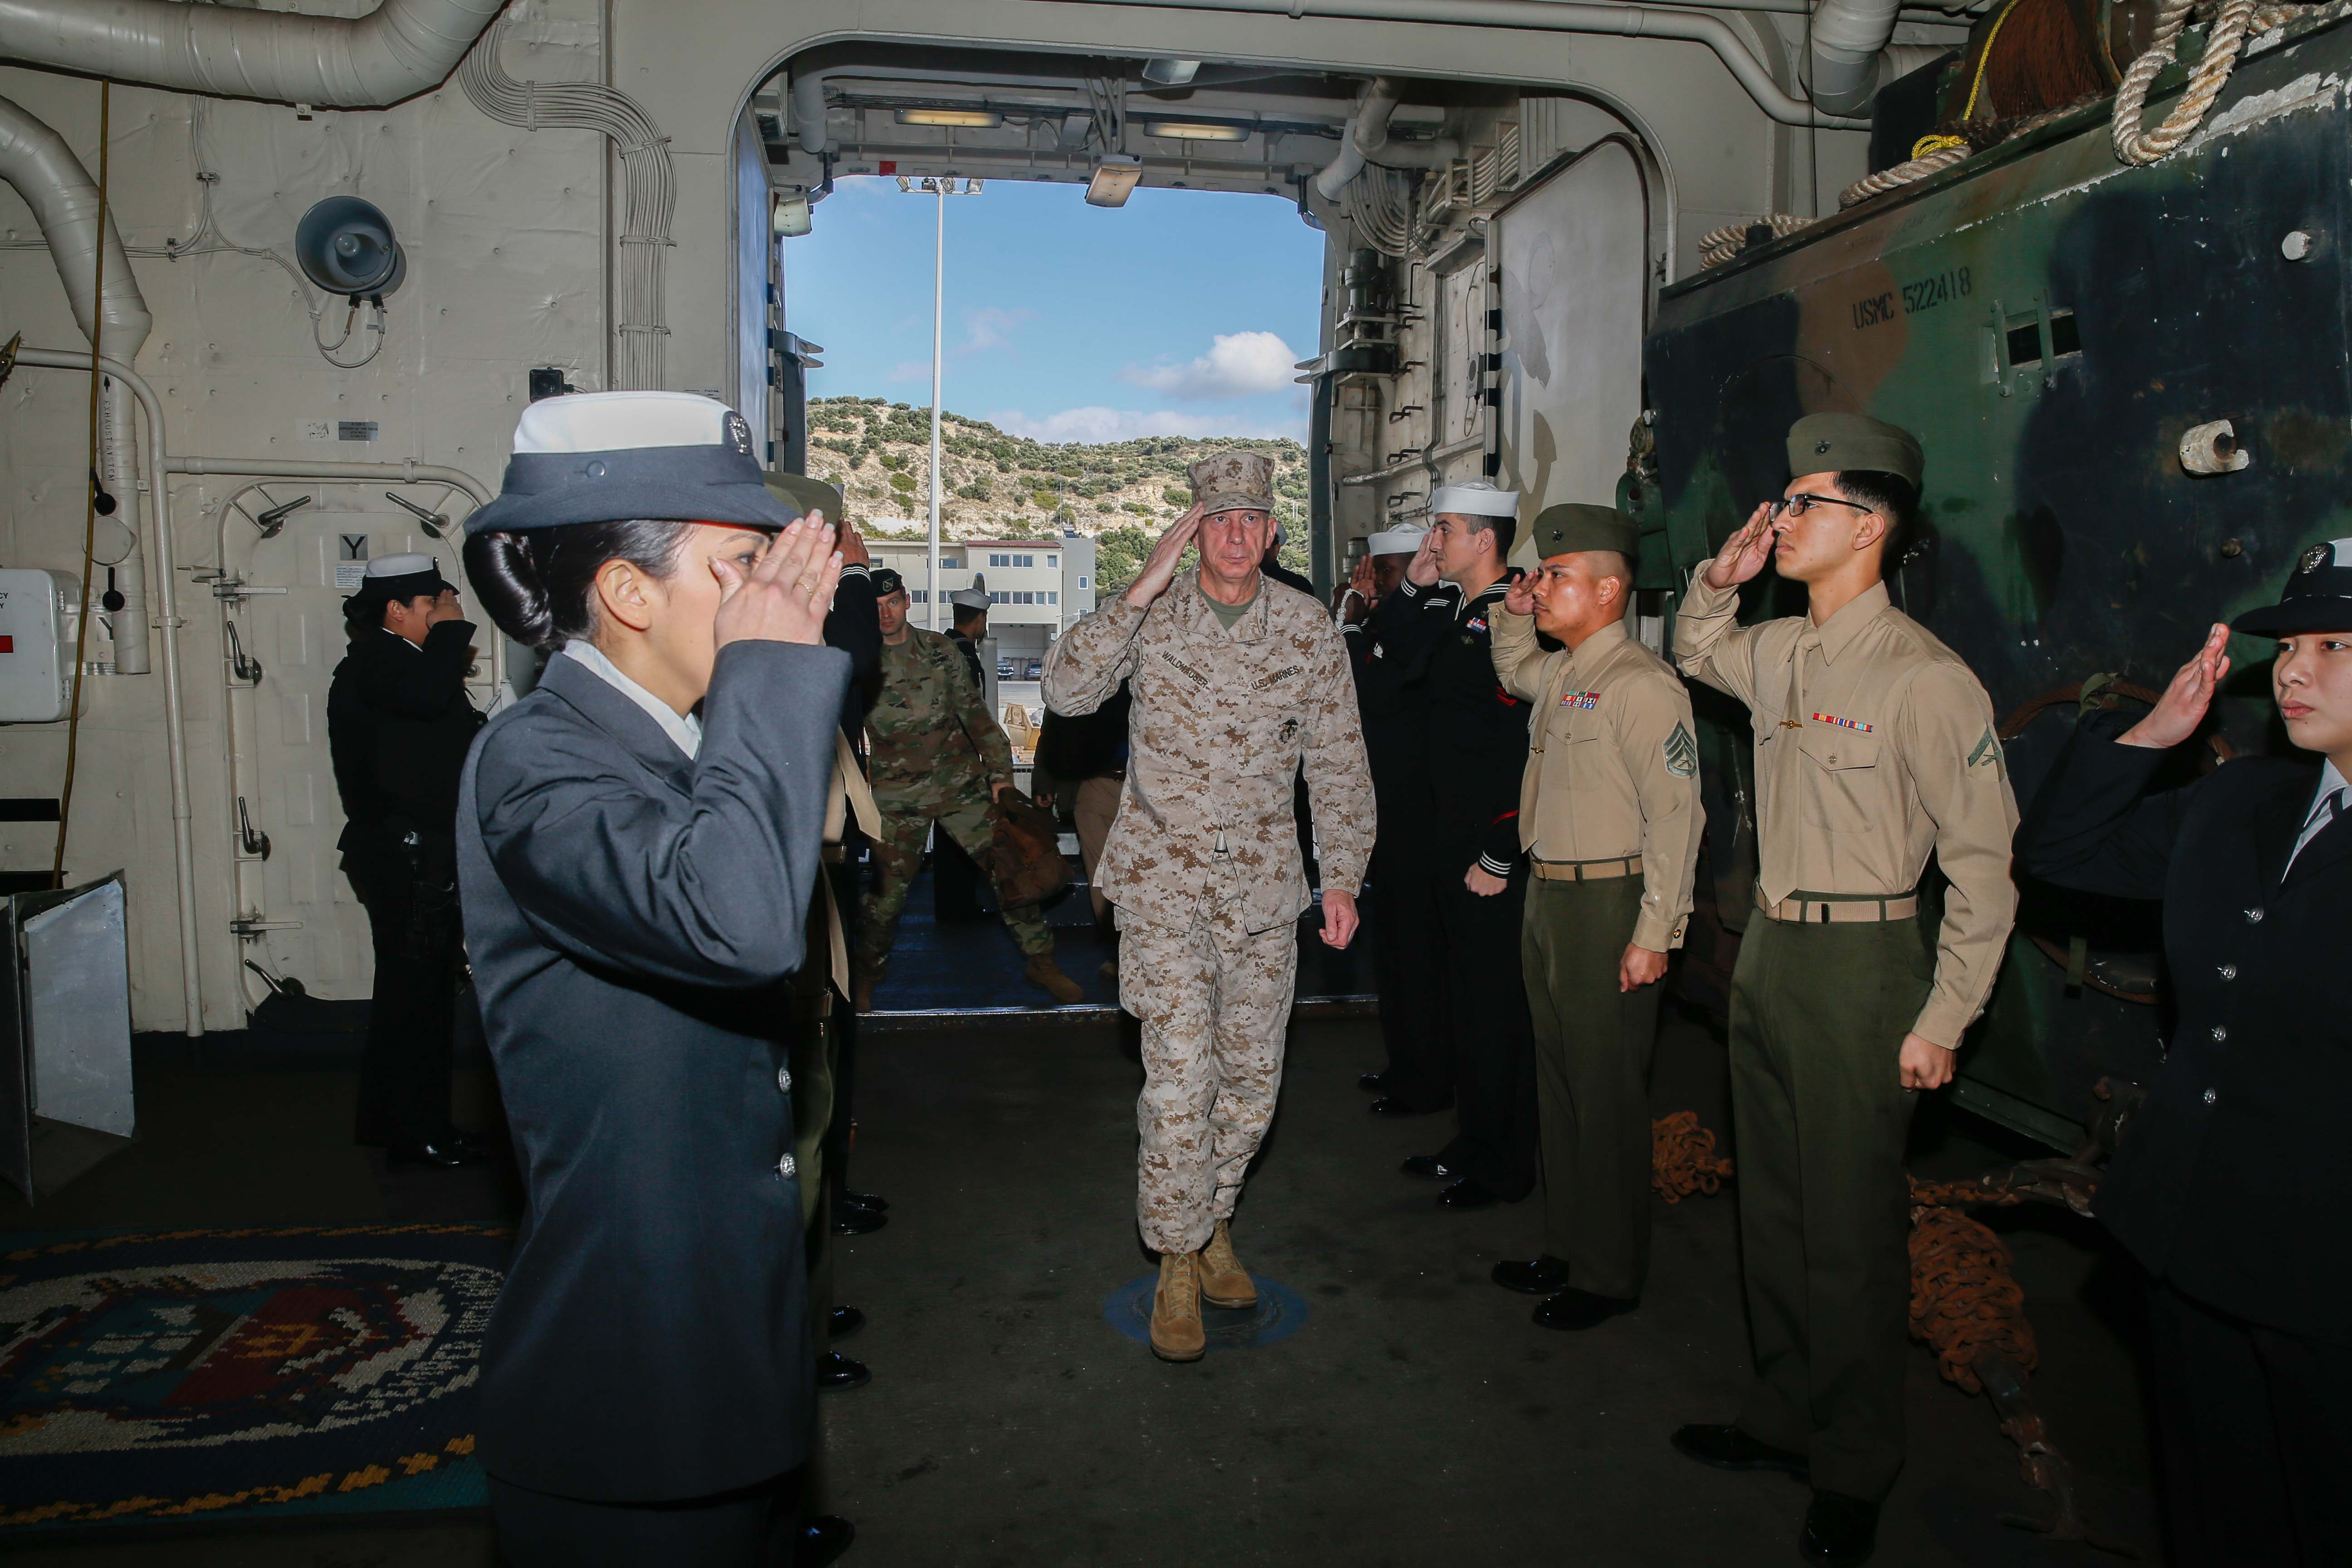 MEDITERRANEAN SEA (Nov. 29, 2017) – U.S. Marine Corps Gen. Thomas D. Waldhauser, Commander, U.S. Africa Command, comes aboard the San Antonio-class amphibious transport dock ship USS San Diego (LPD 22), Nov. 29, 2017. Waldhauser visited the USS San Diego (LPD 22) to personally congratulate Marines and Sailors of the 15th Marine Expeditionary Unit and America Amphibious Ready Group for the work and efforts in supporting missions in the 6th Fleet area of operations. USS San Diego is deployed with the America ARG and 15th MEU to support maritime security operations and theater security cooperation efforts in the U.S. 6th Fleet area of operations.(U.S. Marine Corps photo by Cpl. Jeremy Laboy/Released)